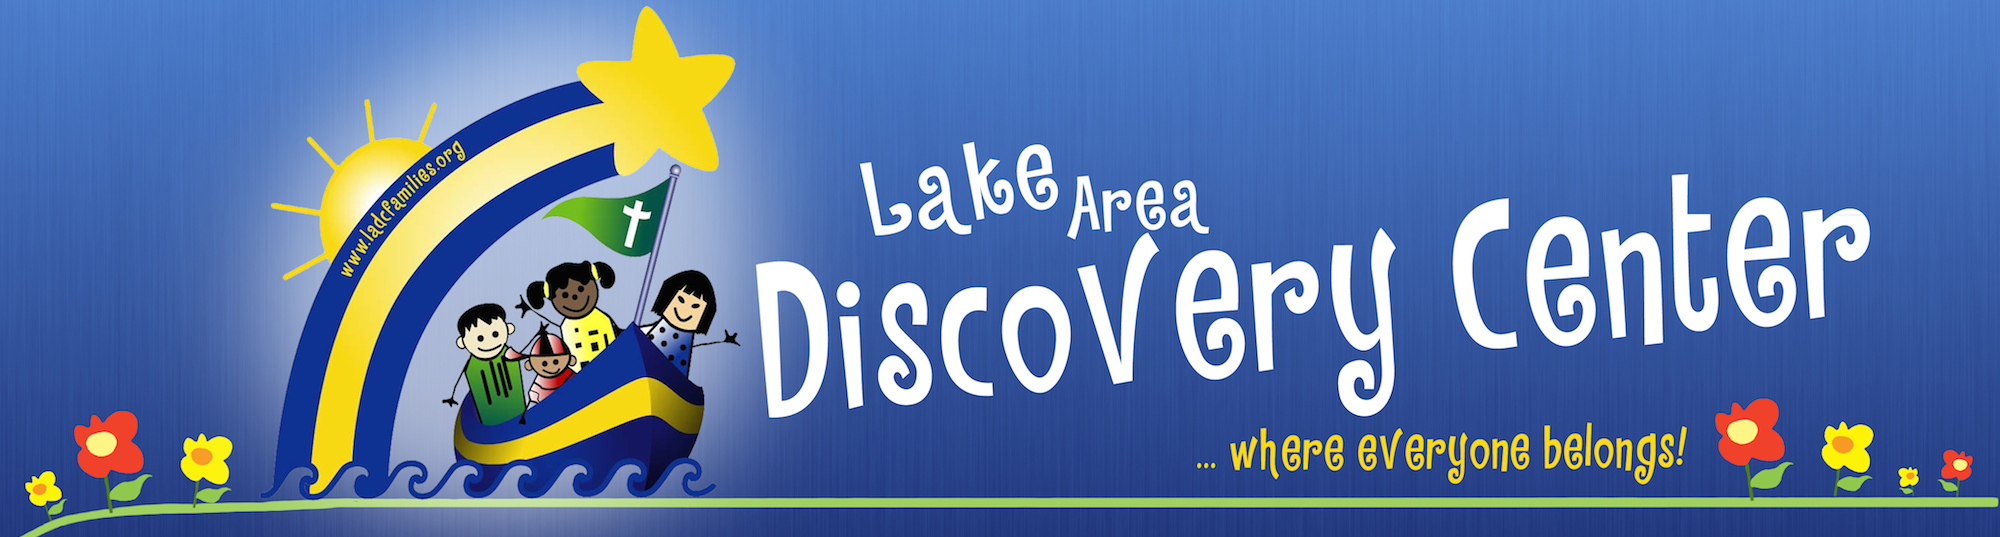 Lake Area Discovery Center at St Josephs School